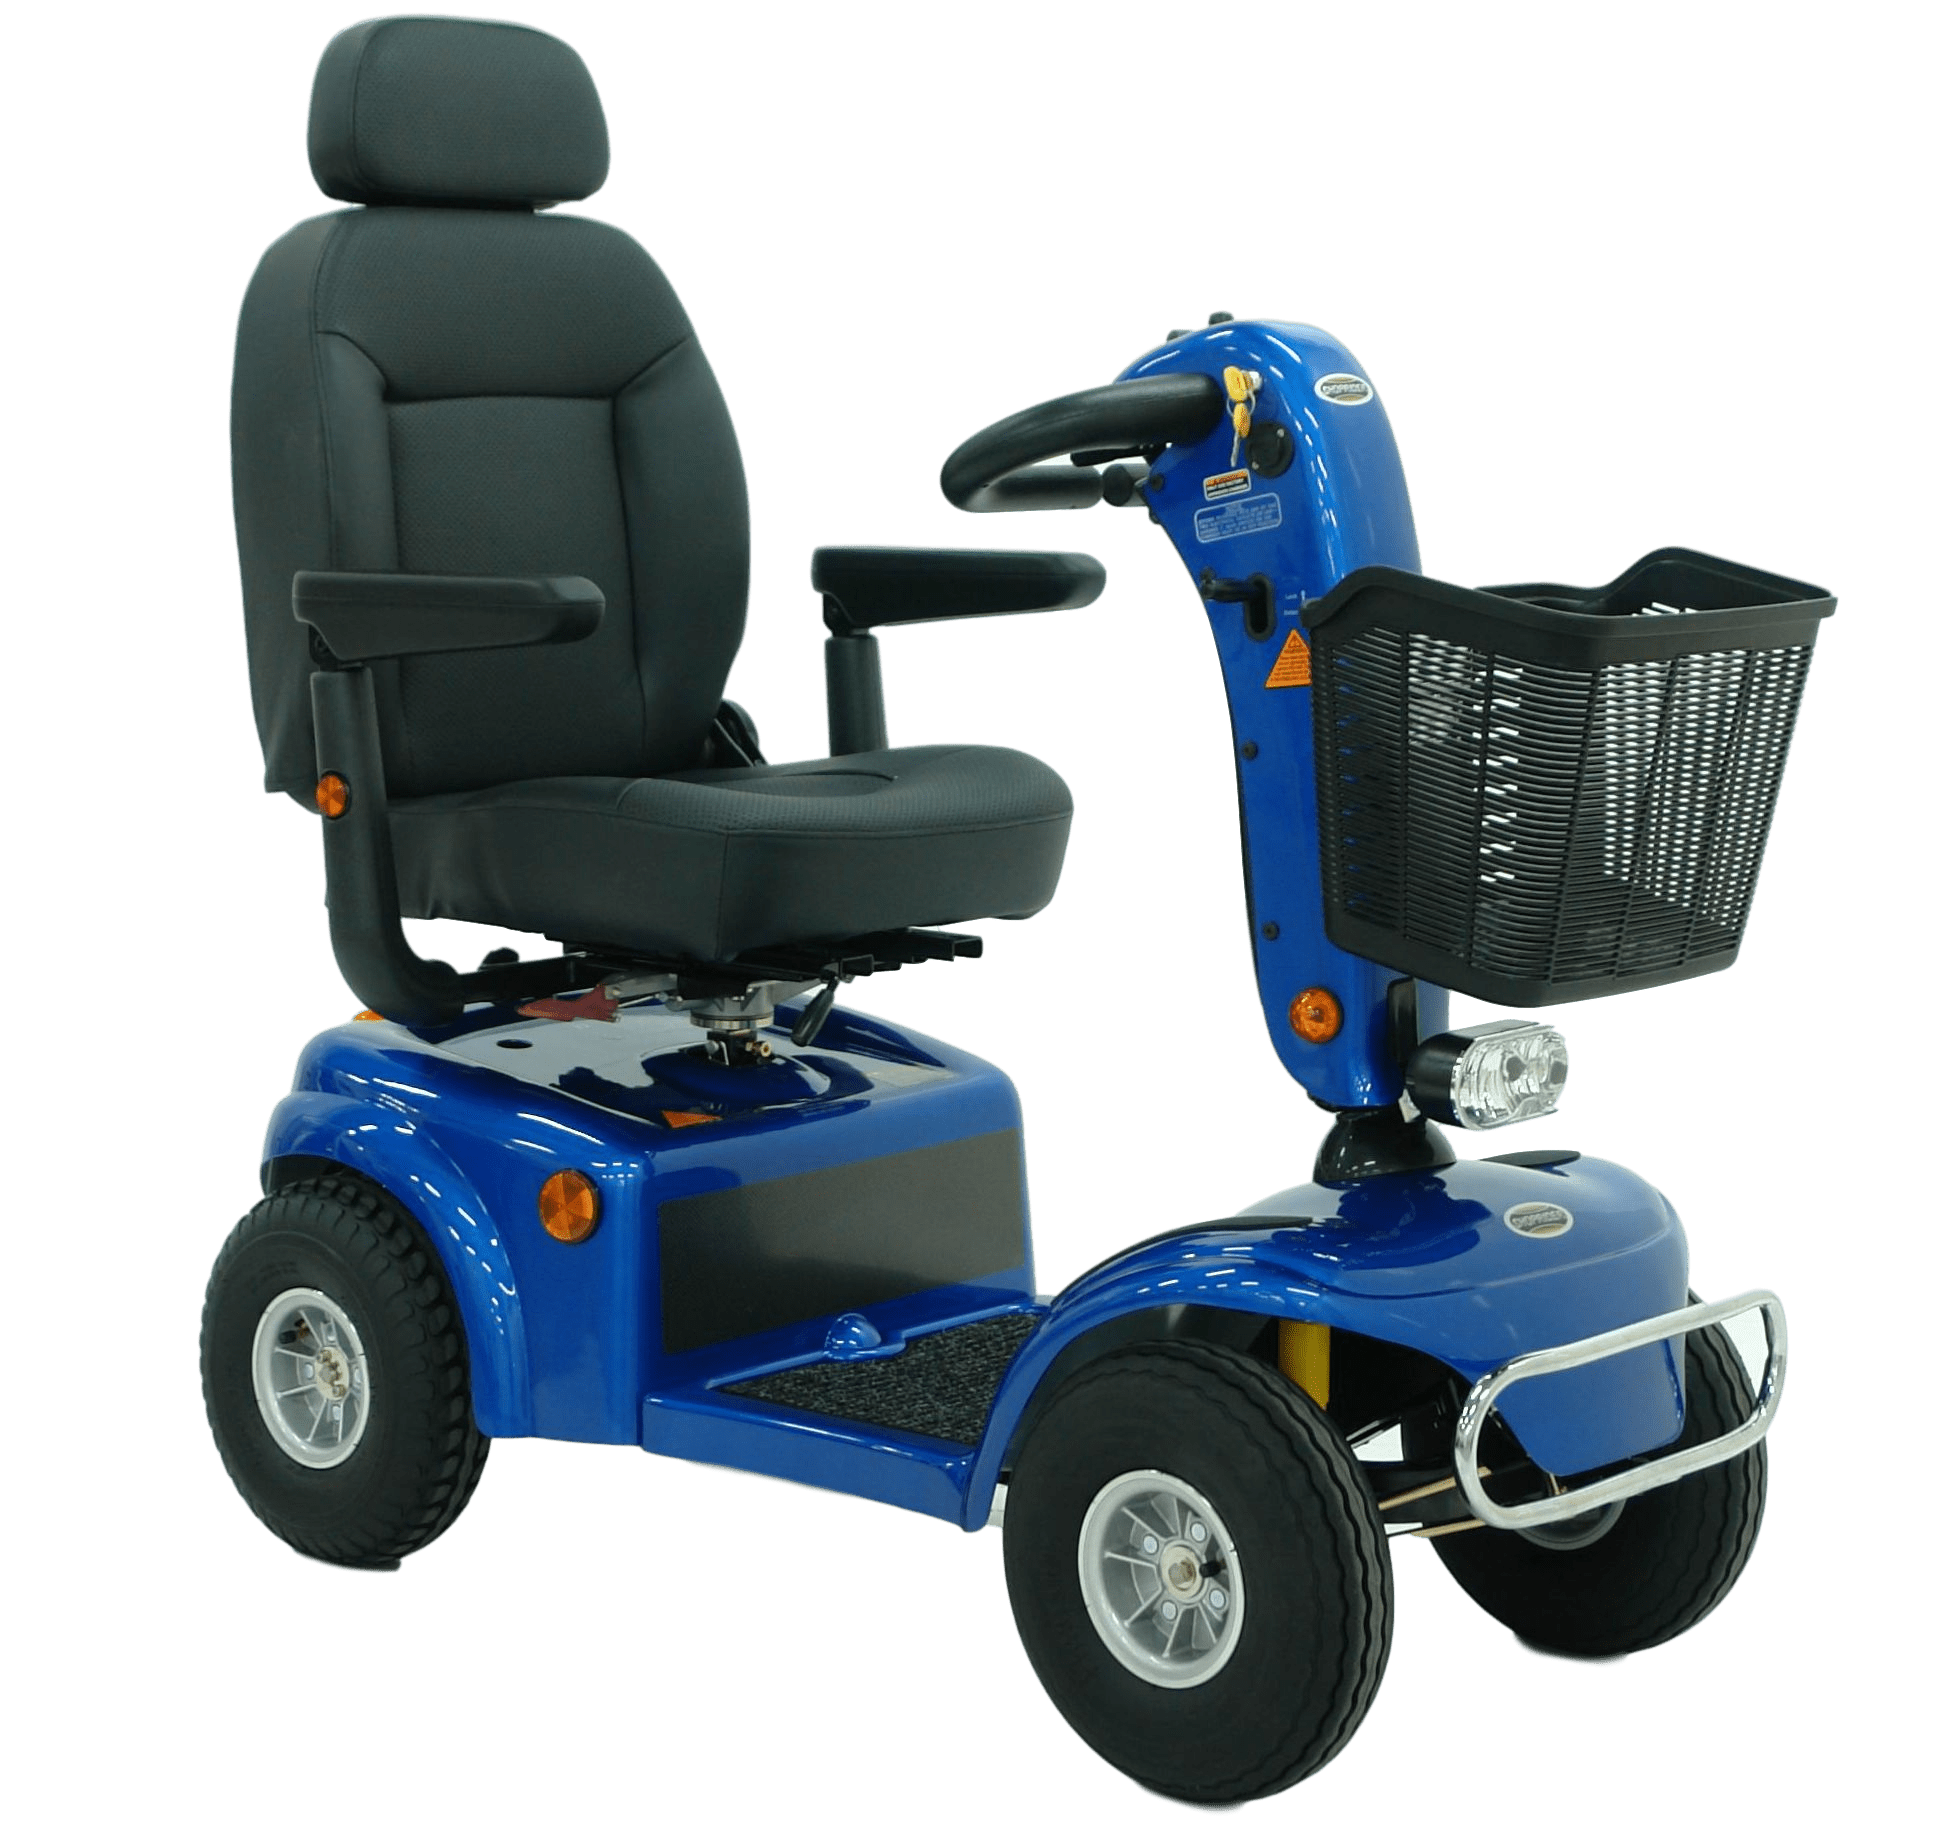 Shoprider AllRounder 4 Wheel Mobility Scooter